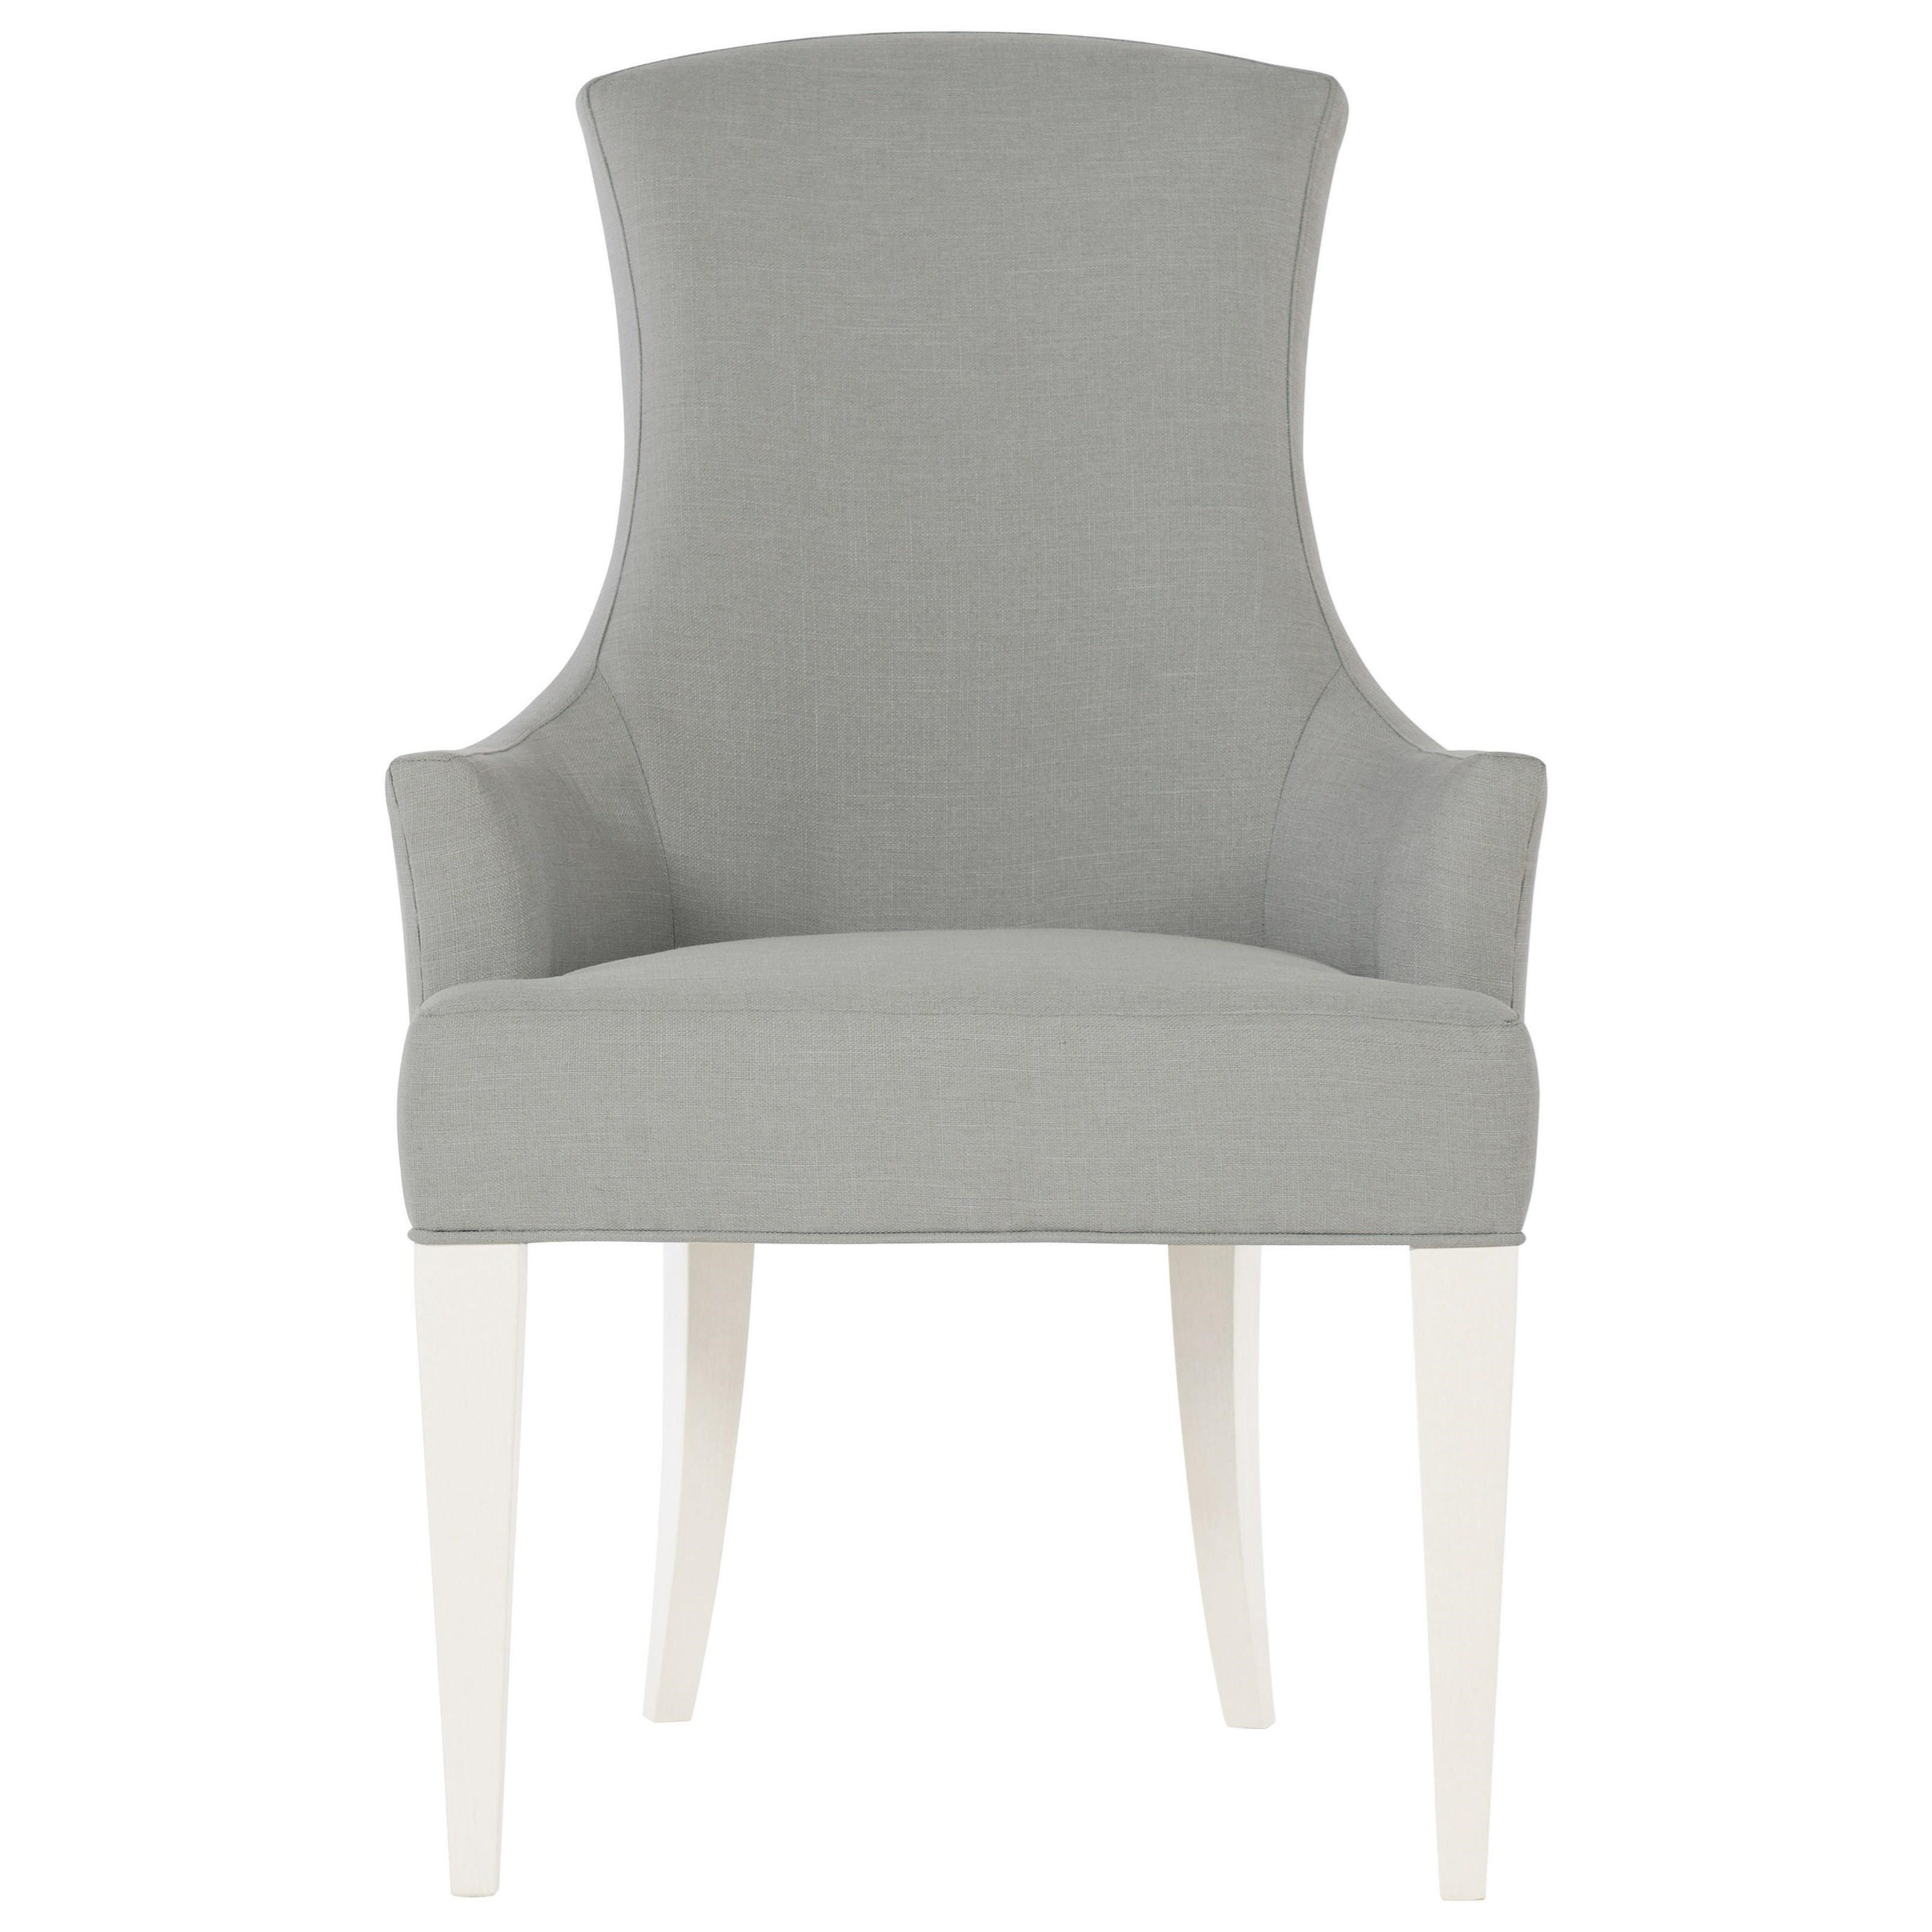 Calista Arm Chair by Bernhardt at Baer's Furniture